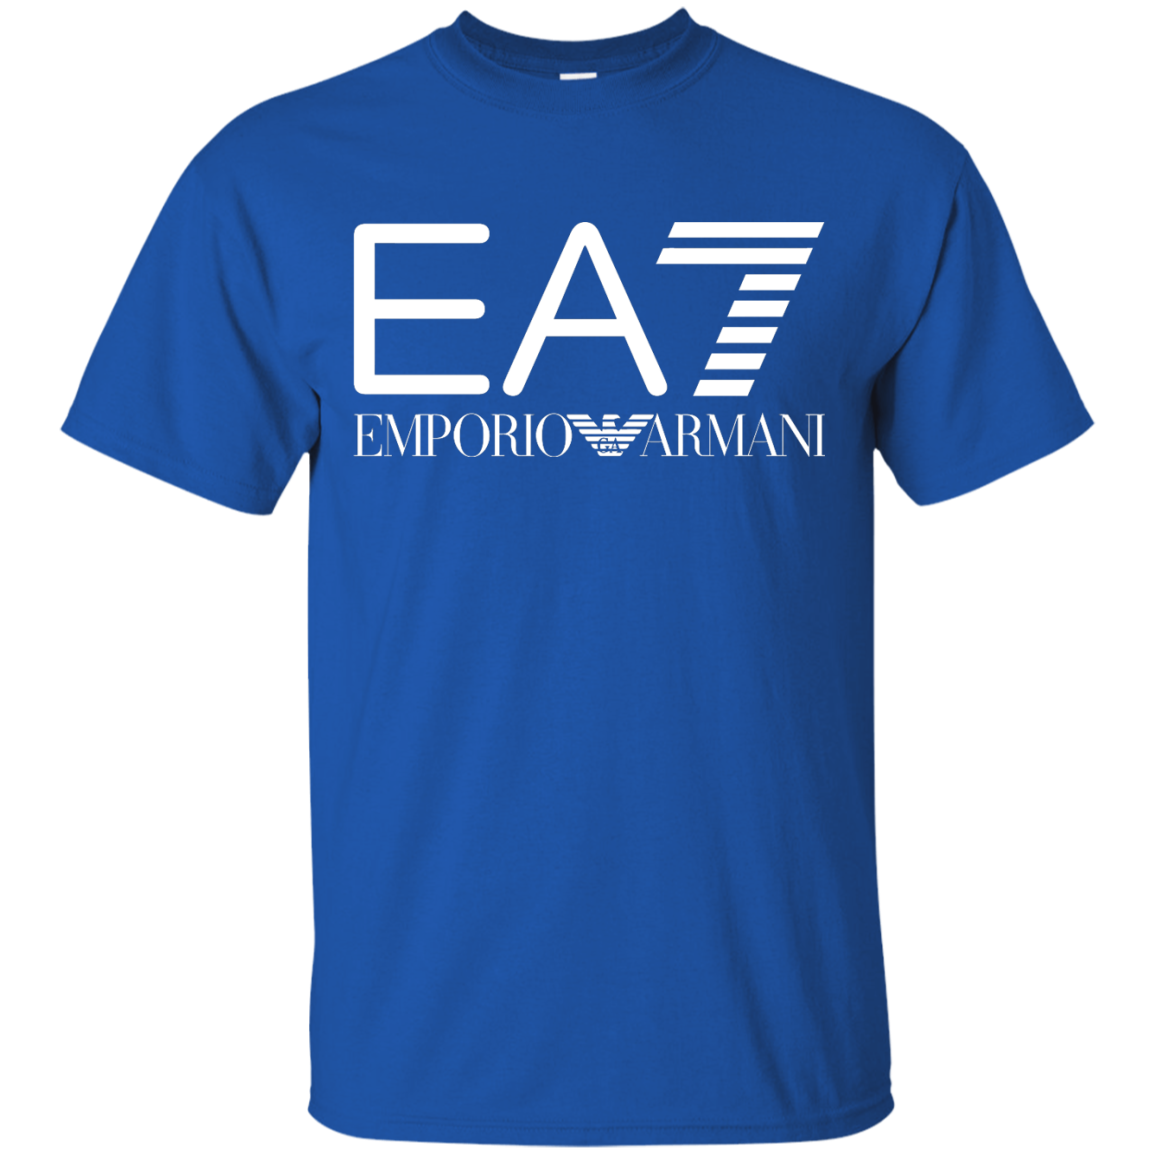 Might be you need this shirt ==>>http://summeupshop.com/products/emporio-armani-ea7-t-shirt-hoodies-tank-top?utm_campaign=social_autopilot&utm_source=pin&utm_medium=pin